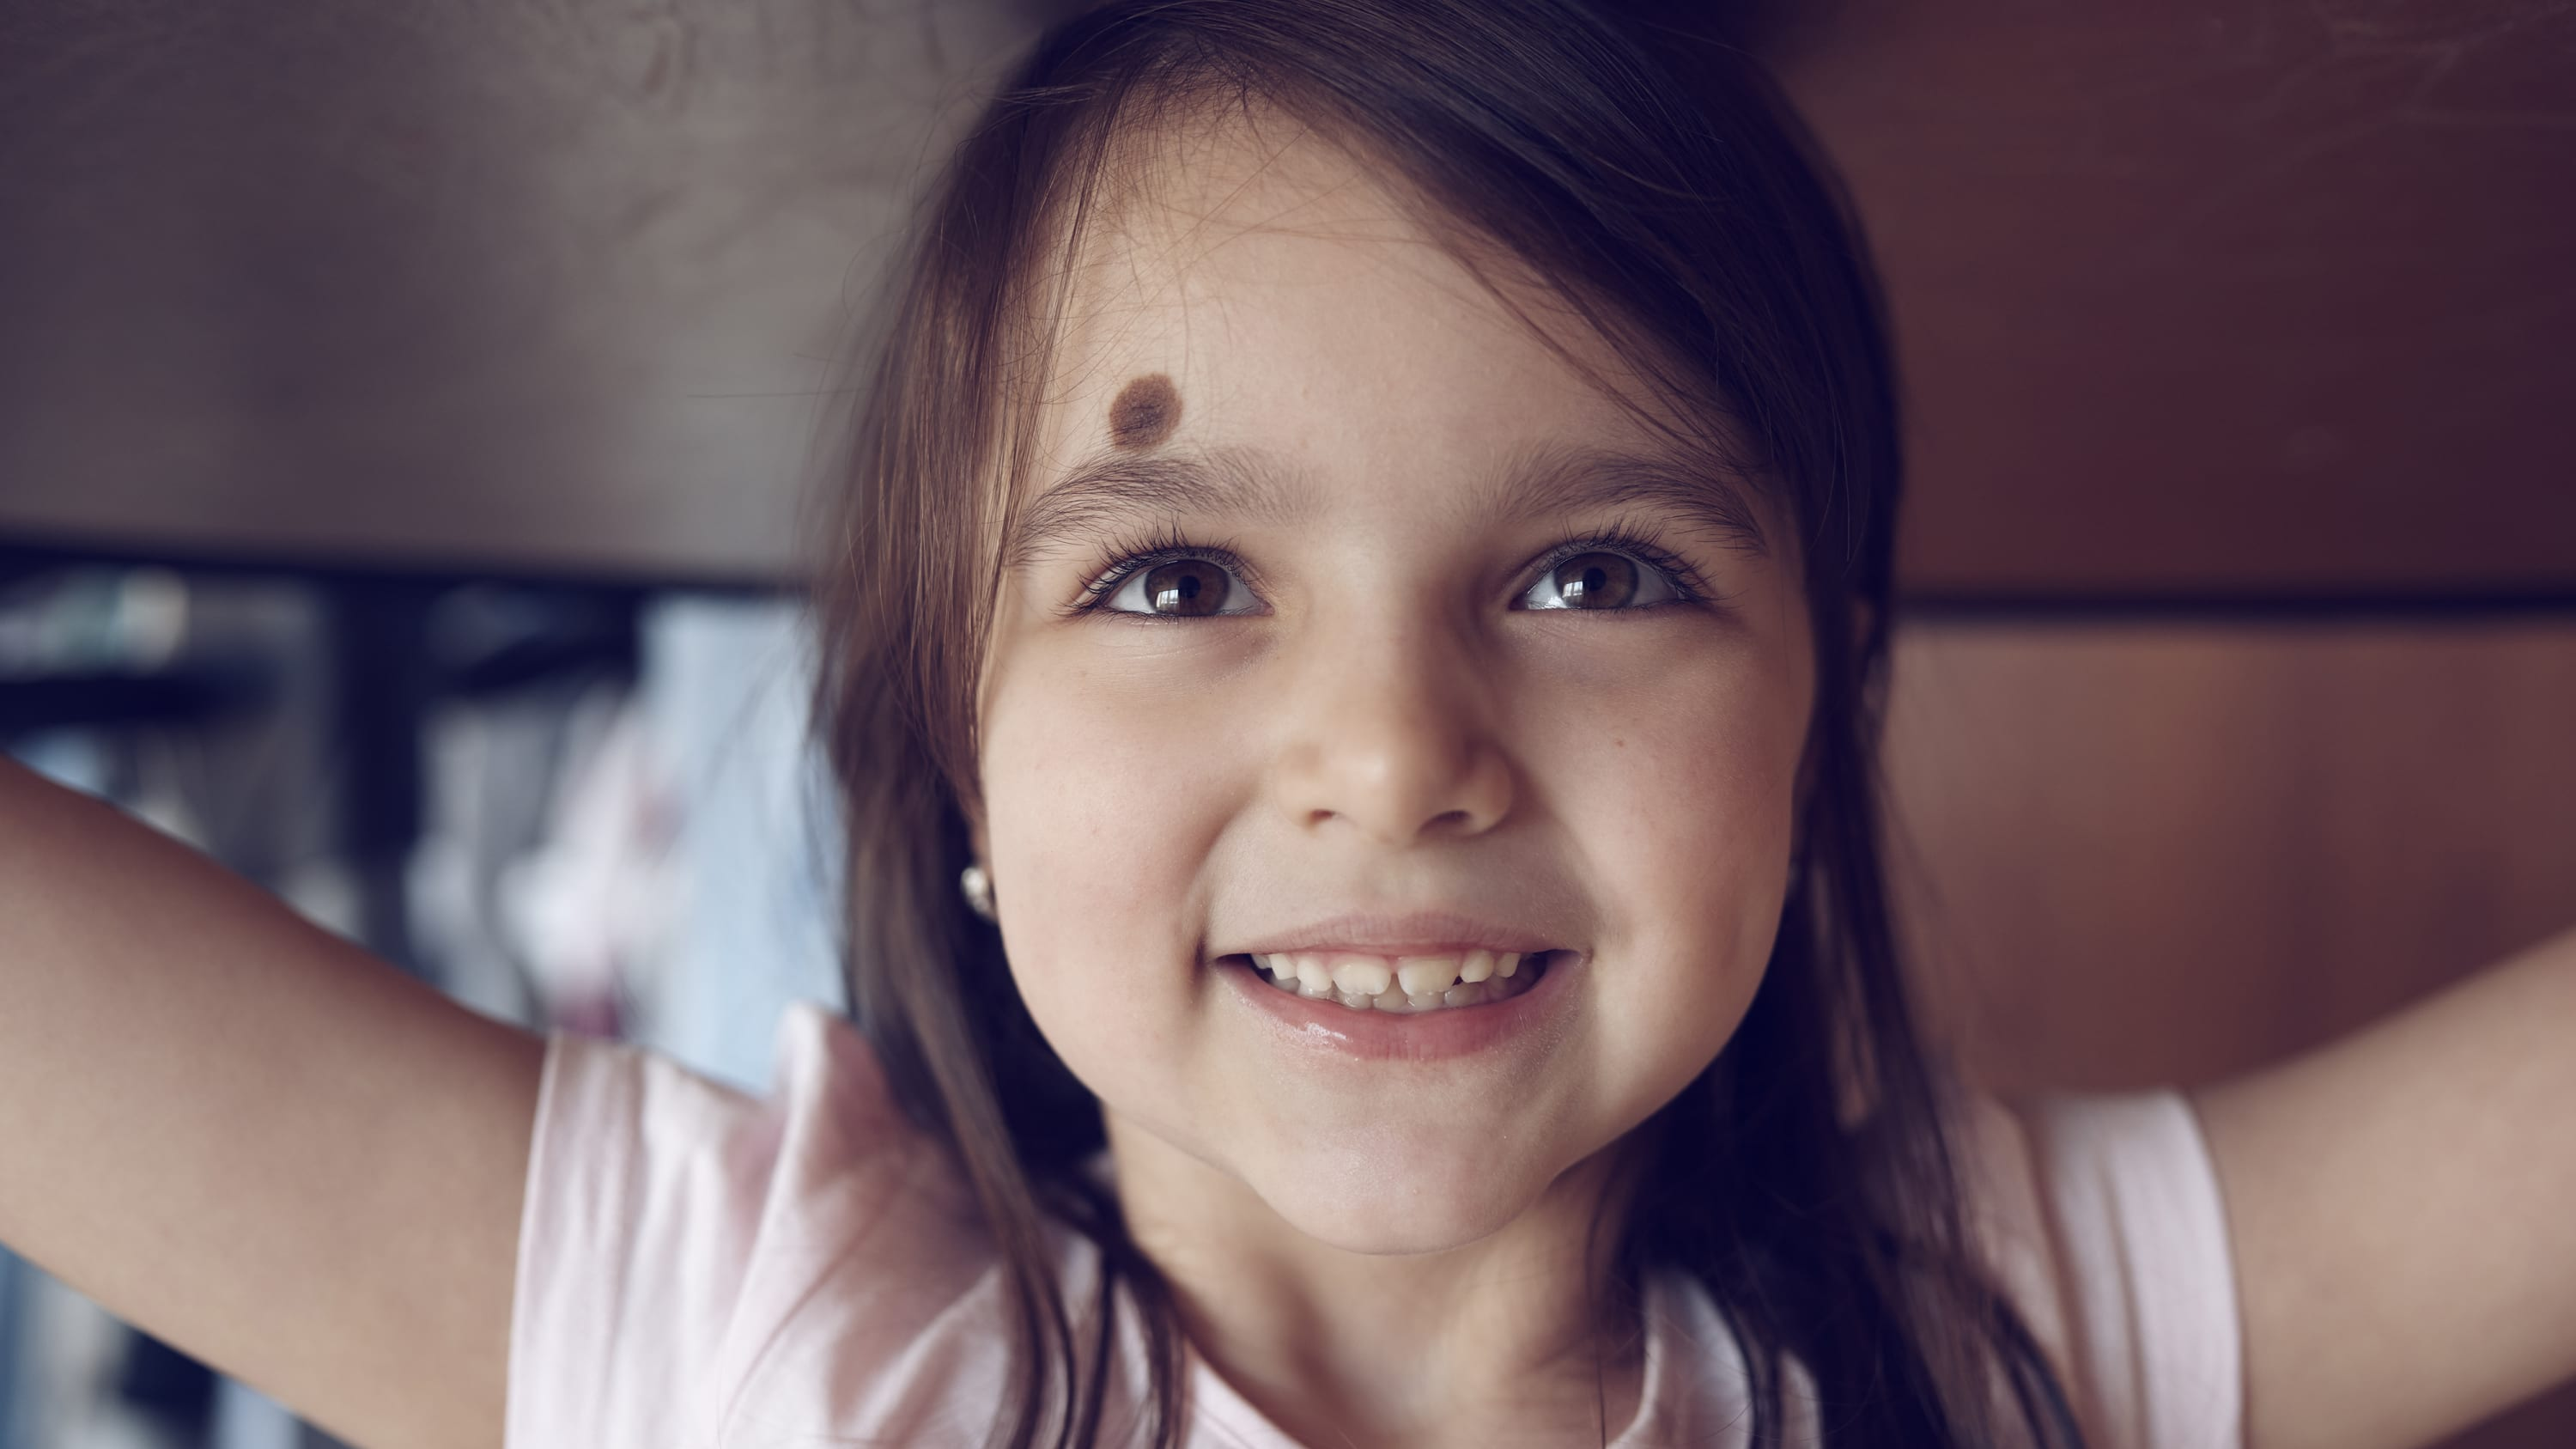 a young girl with a large birthmark on her forehead smiles